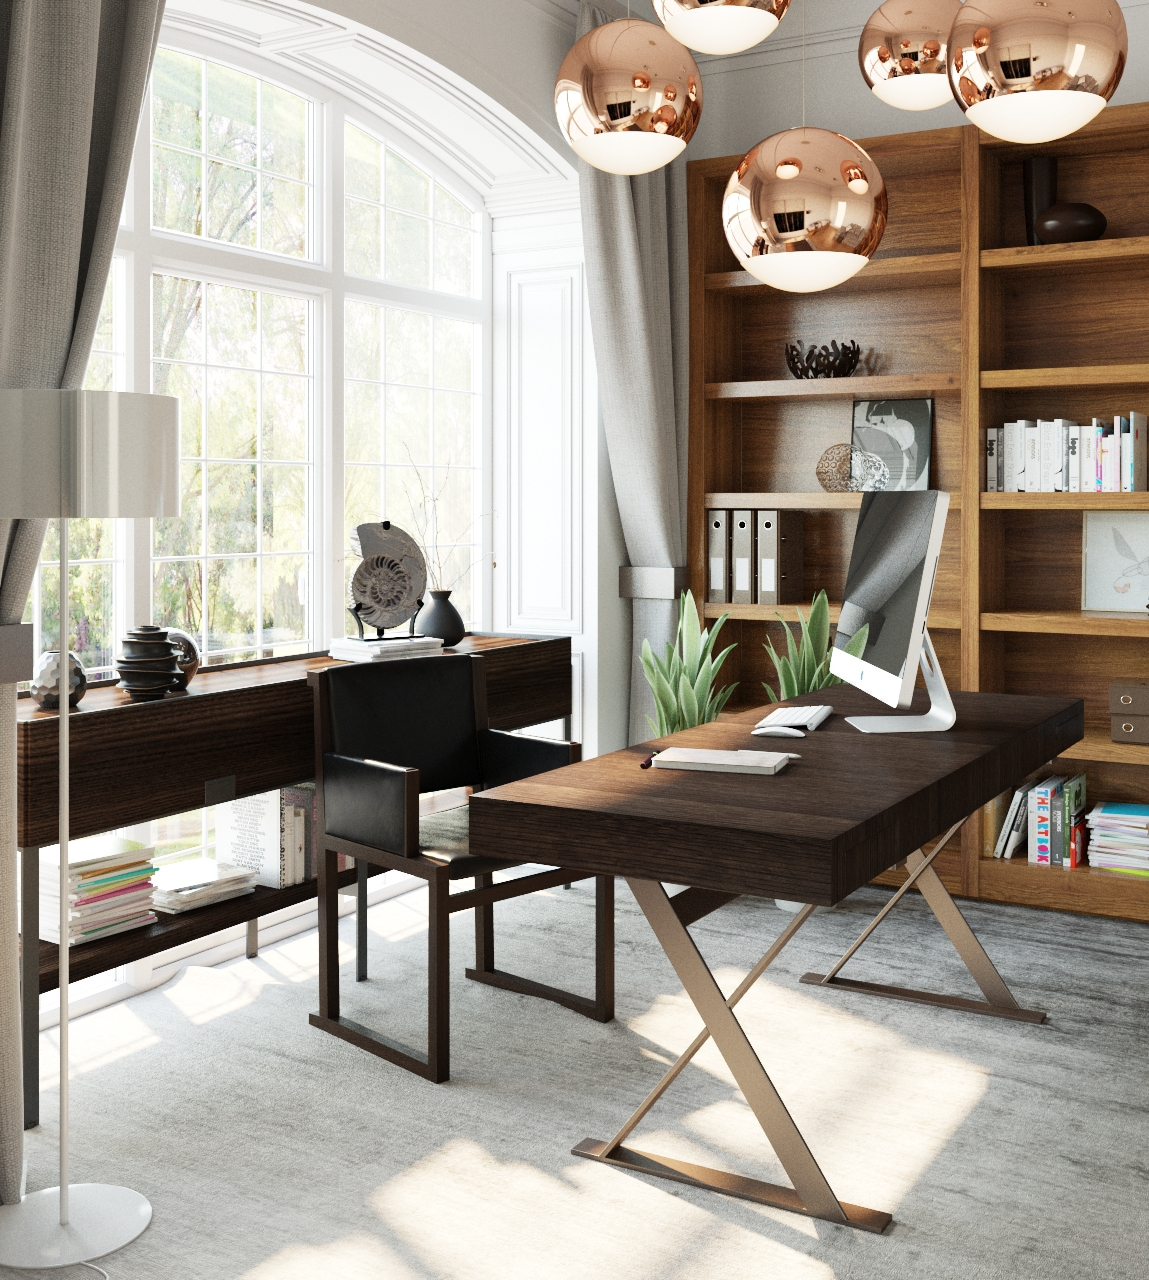 Home Design Ideas Game: 35 Modern Home Office Design Ideas